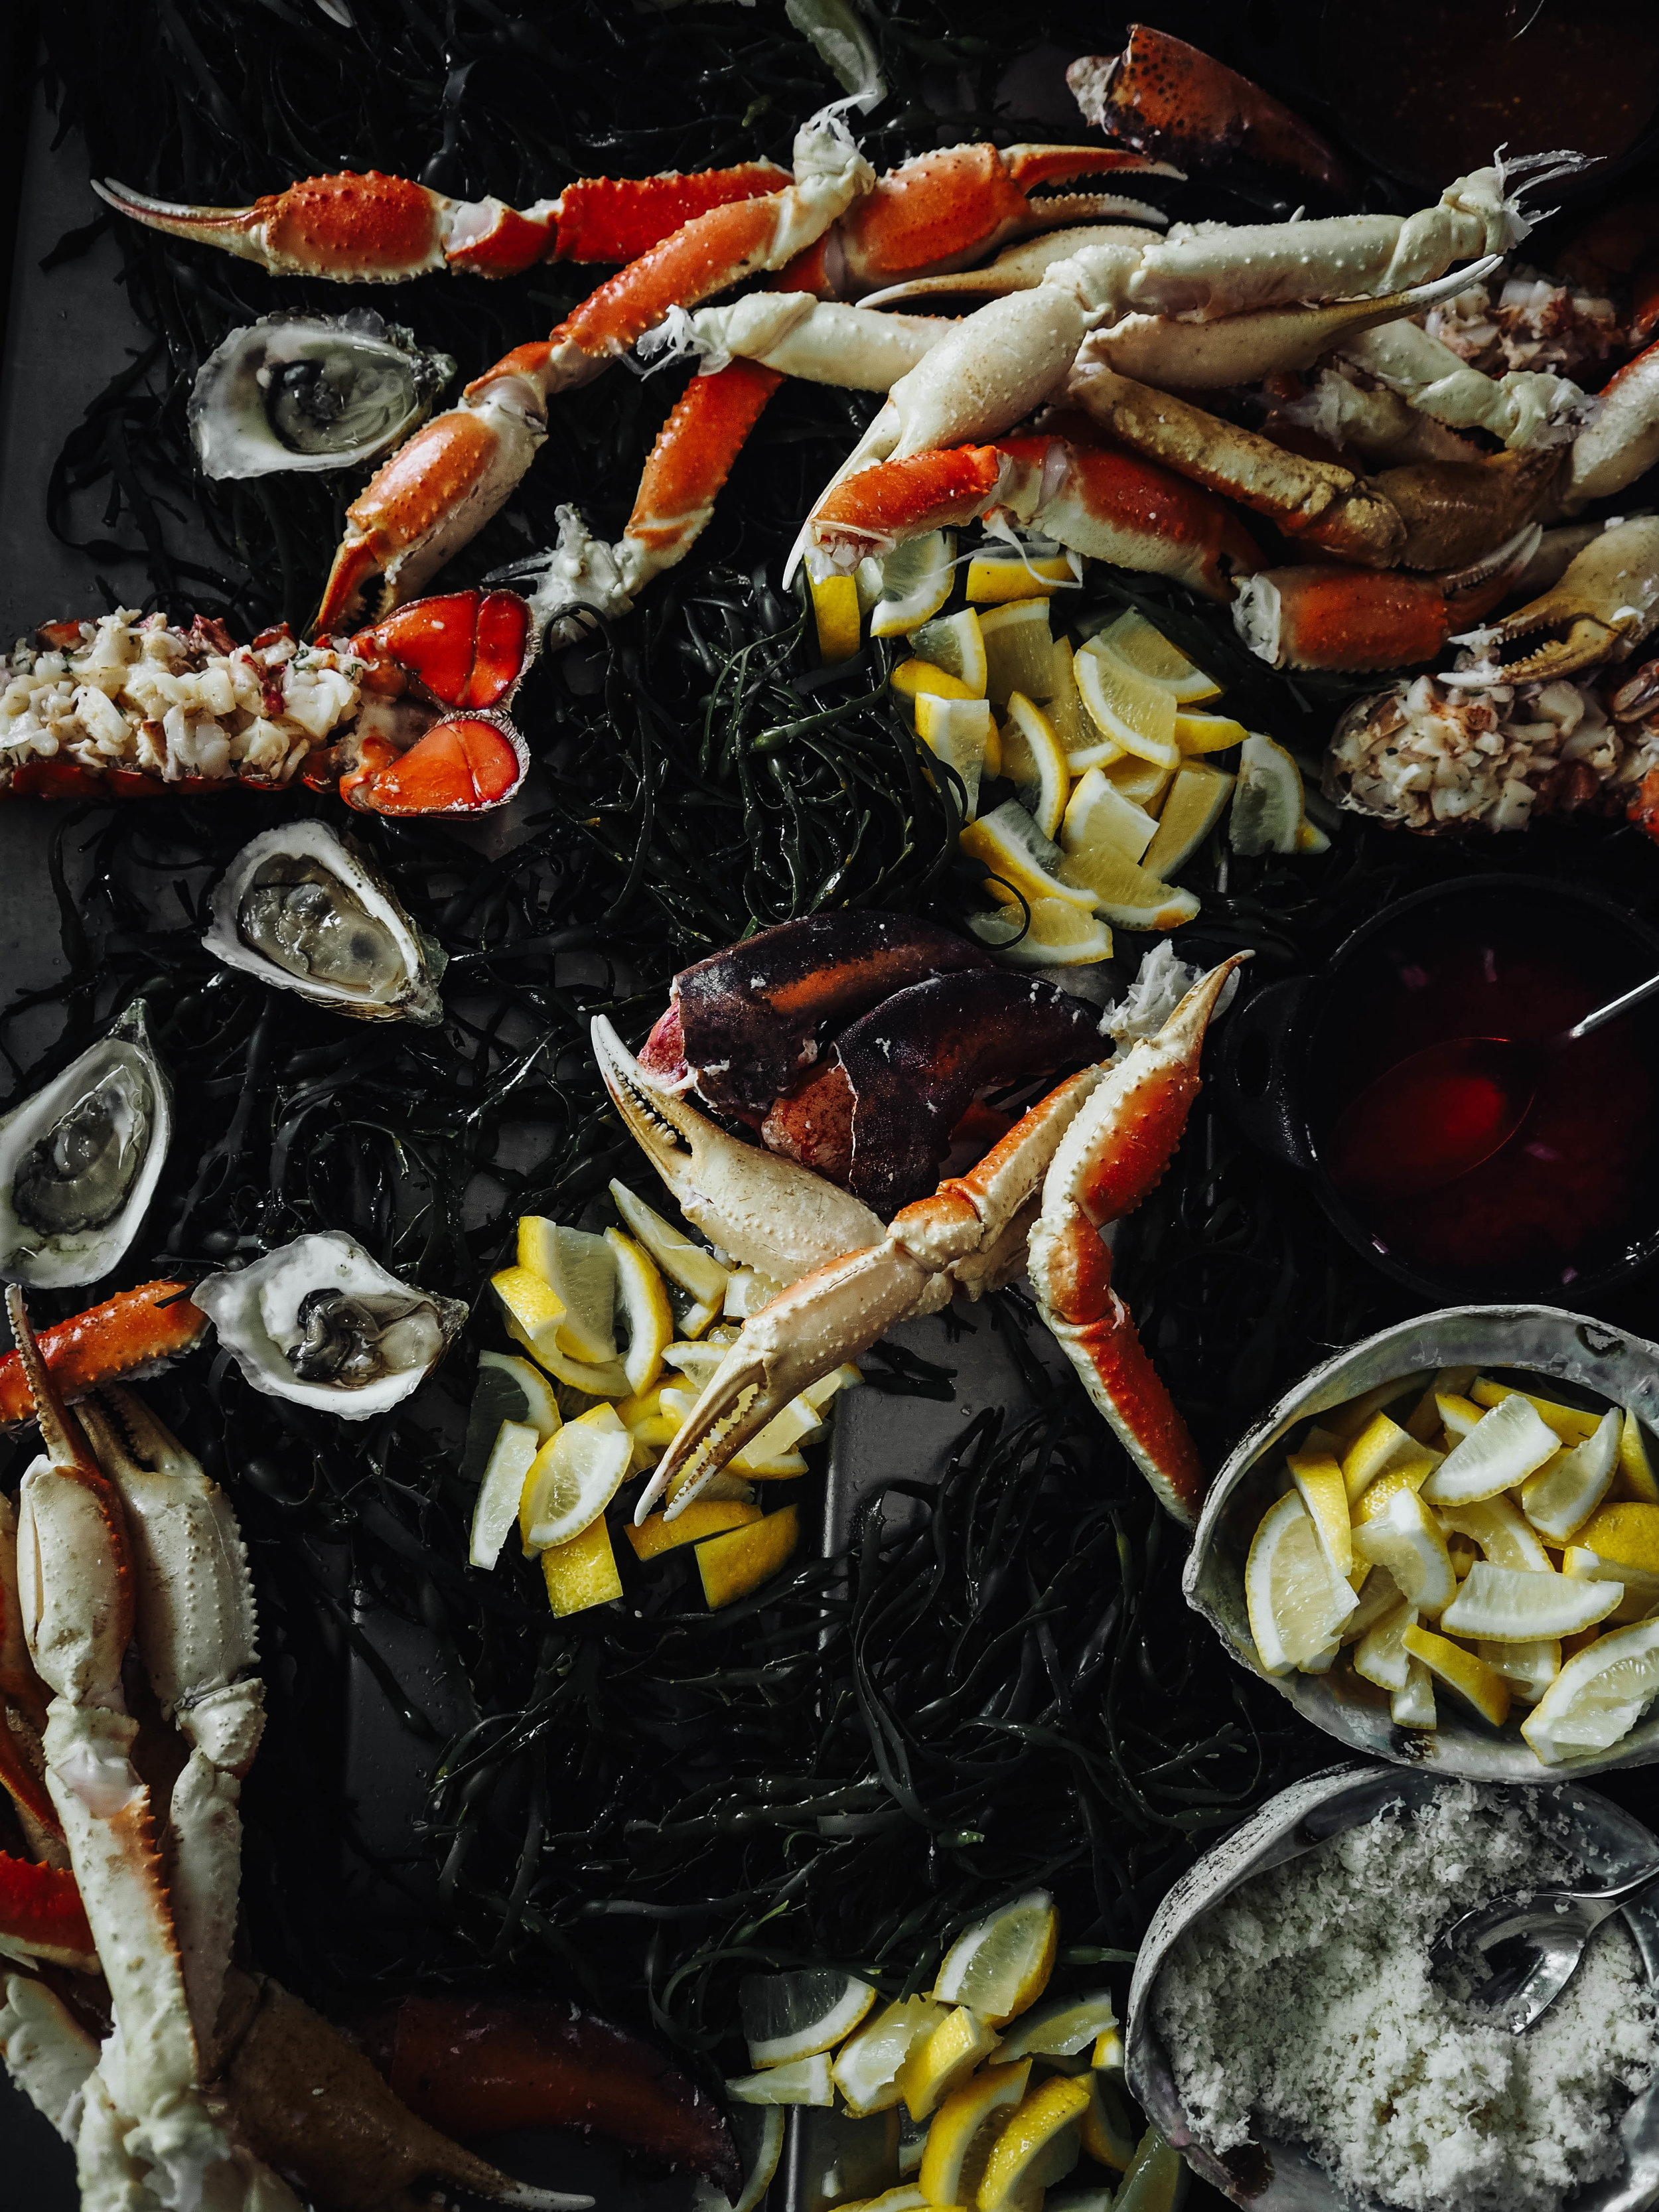 Fresh seafood station featuring lobster tails, crab legs and oysters.